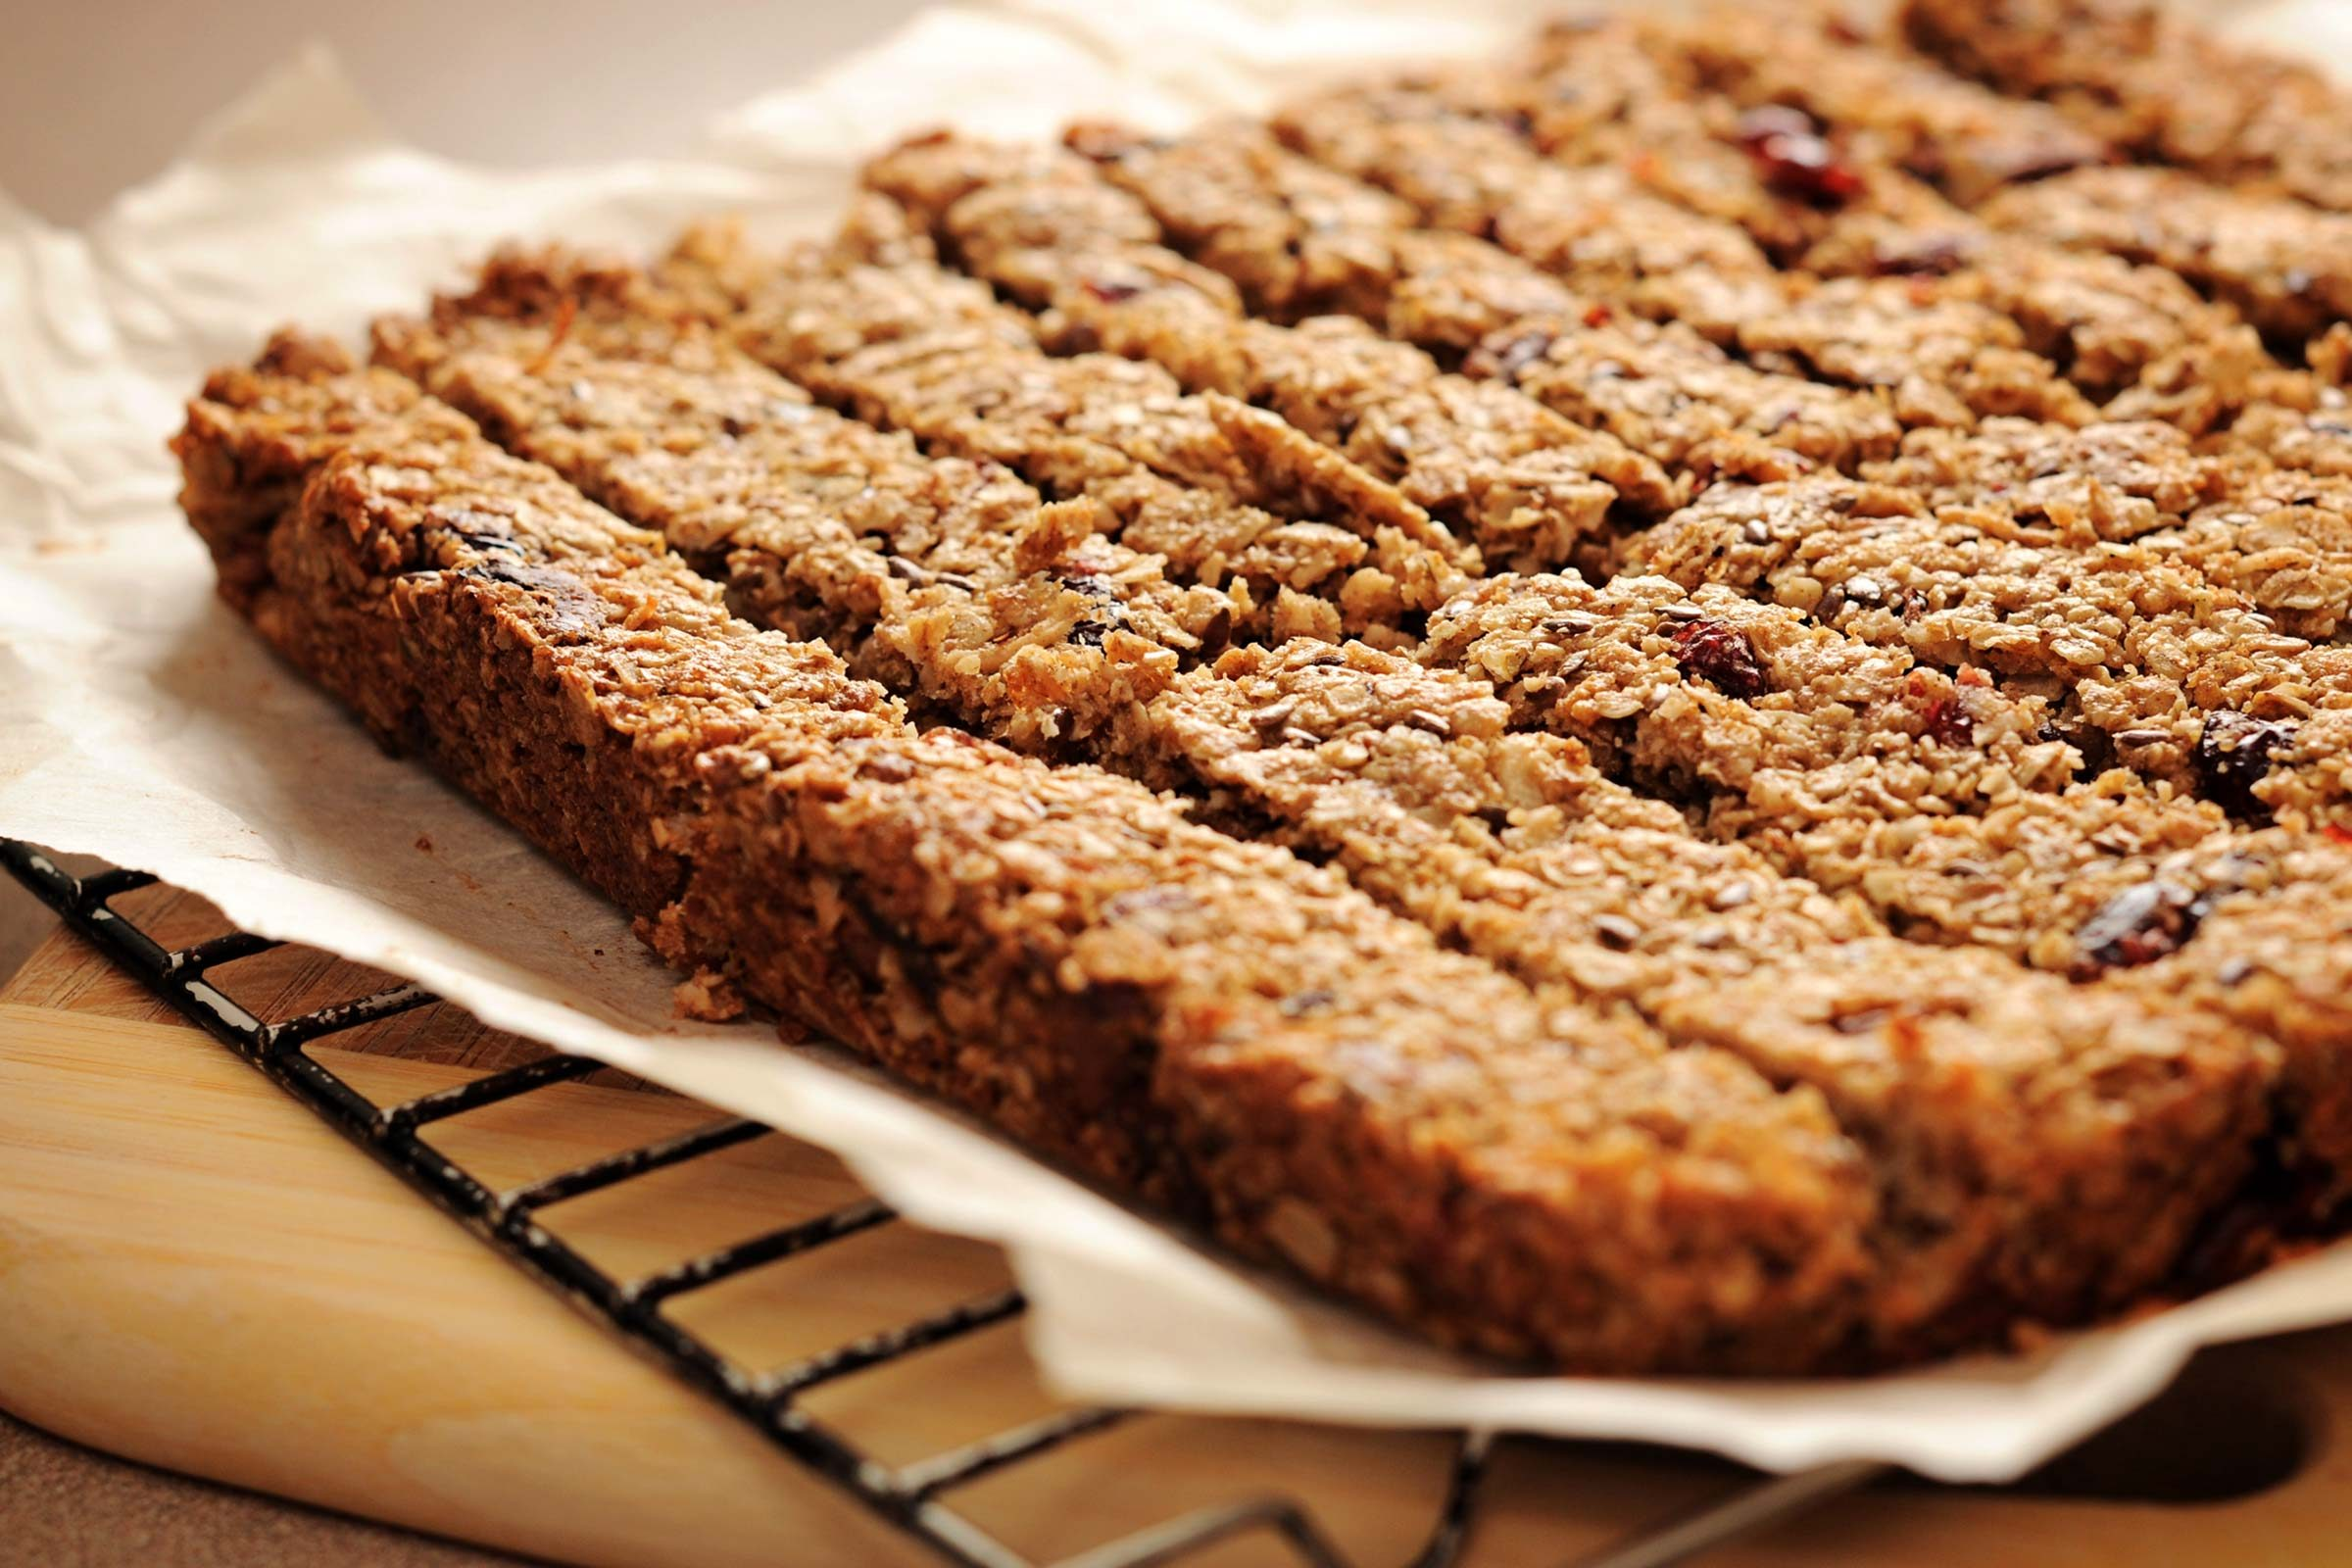 refuel after exercise | homemade protein bar